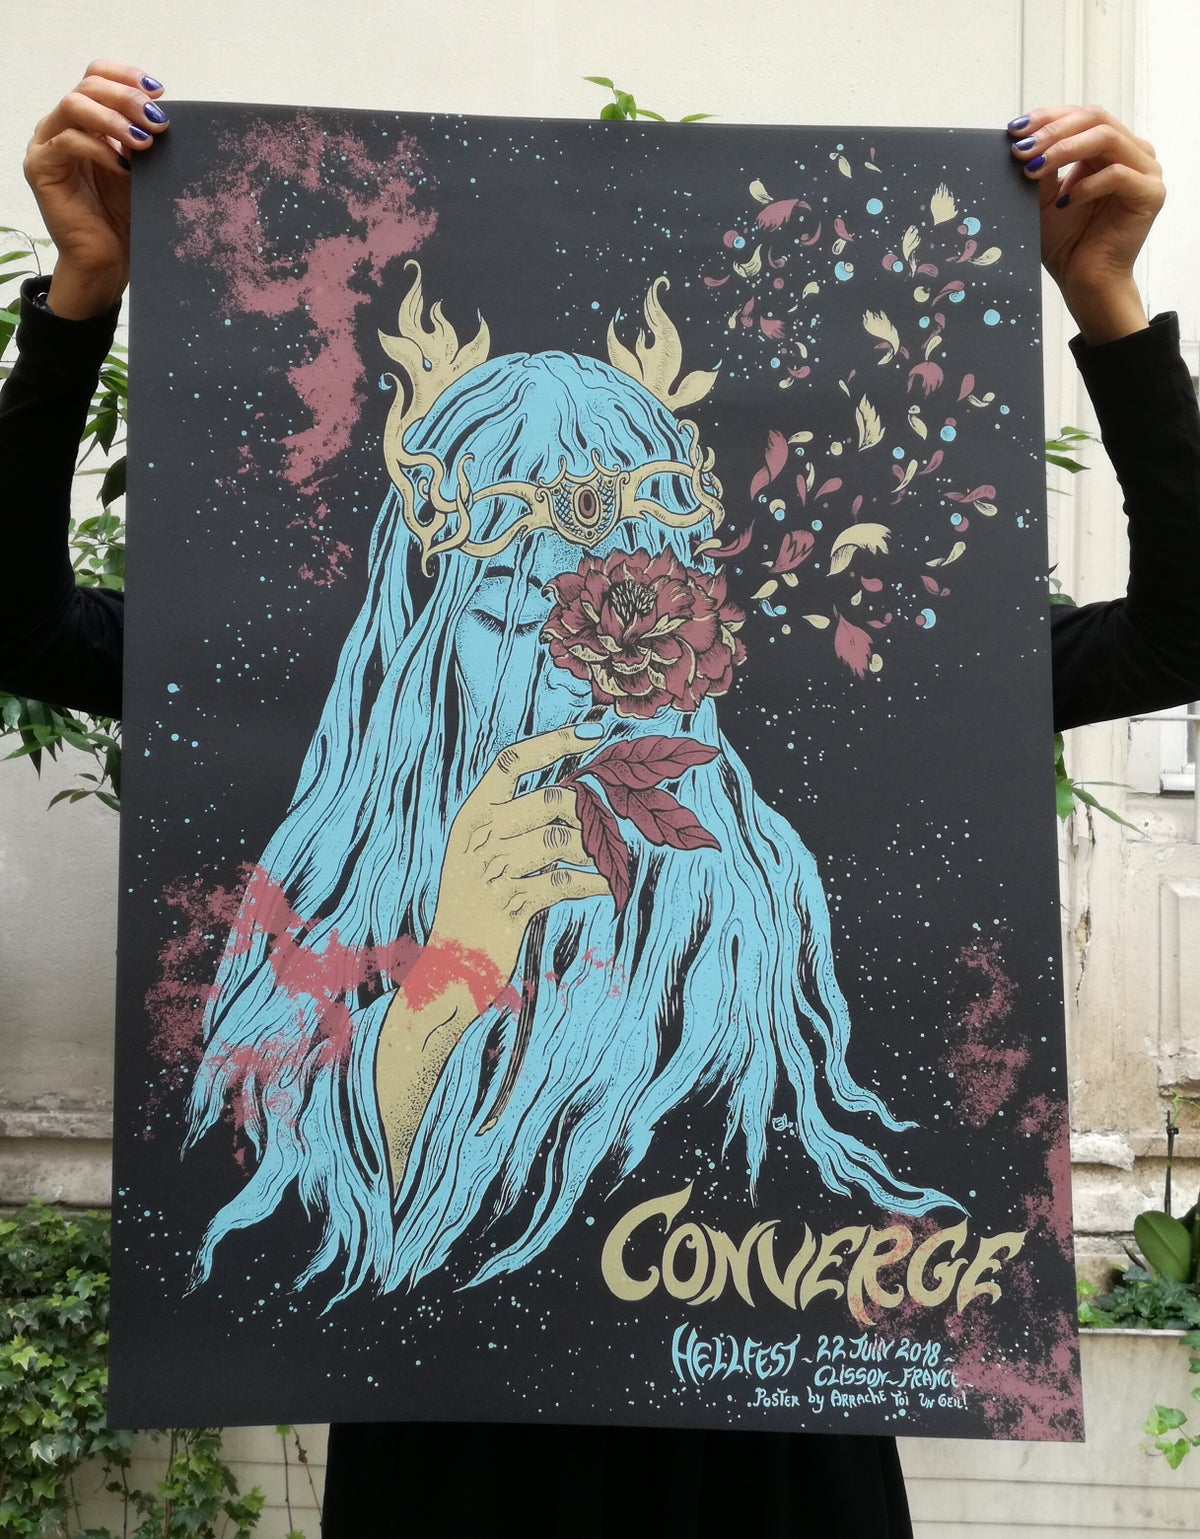 CONVERGE (Hellfest 2018) screenprinted poster